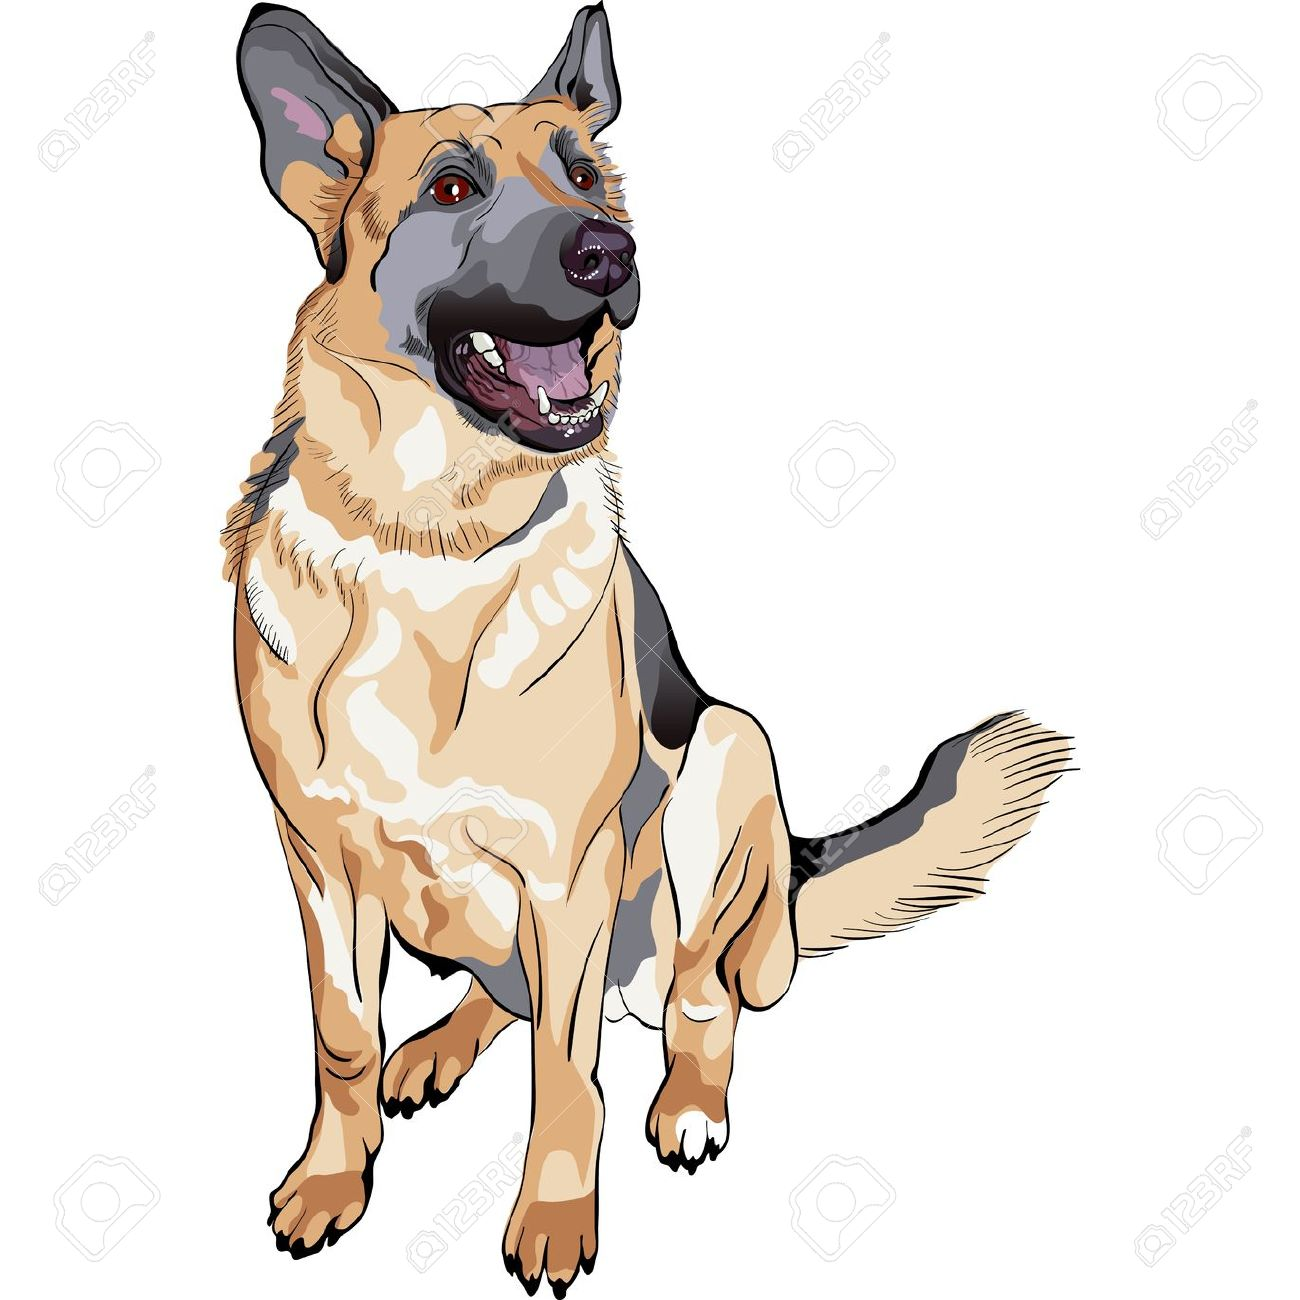 Clipart german shepherd dog.